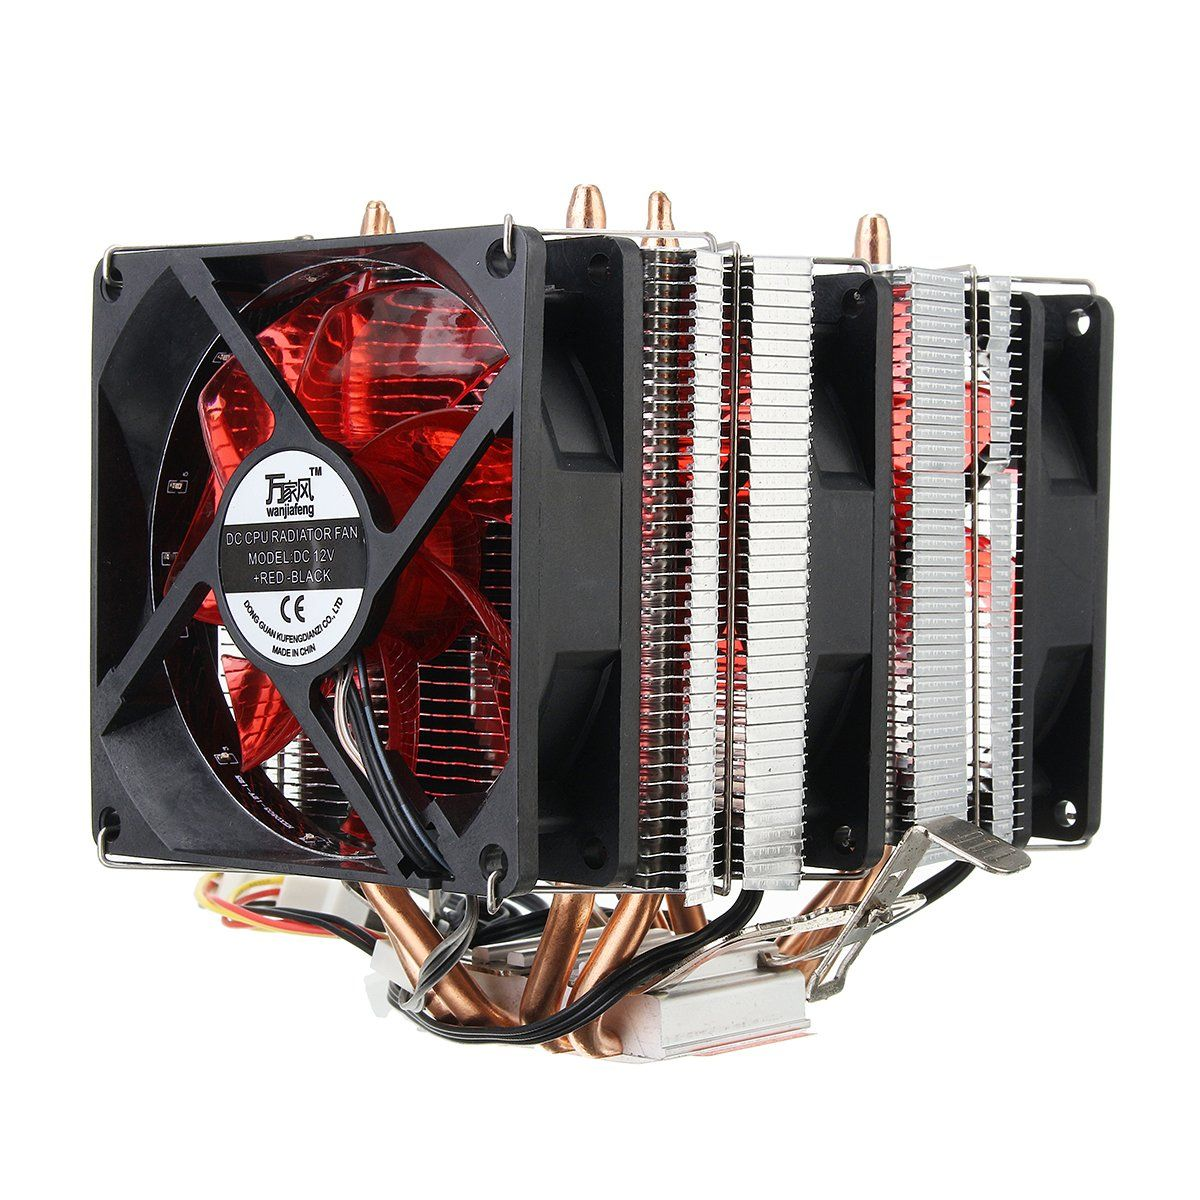 12cm Red Green Blue White Led Light Luminescent Computer Cooling Fan Deepcool Xfan Casing Black Cooler Heat Sink Components Pinterest Lights And